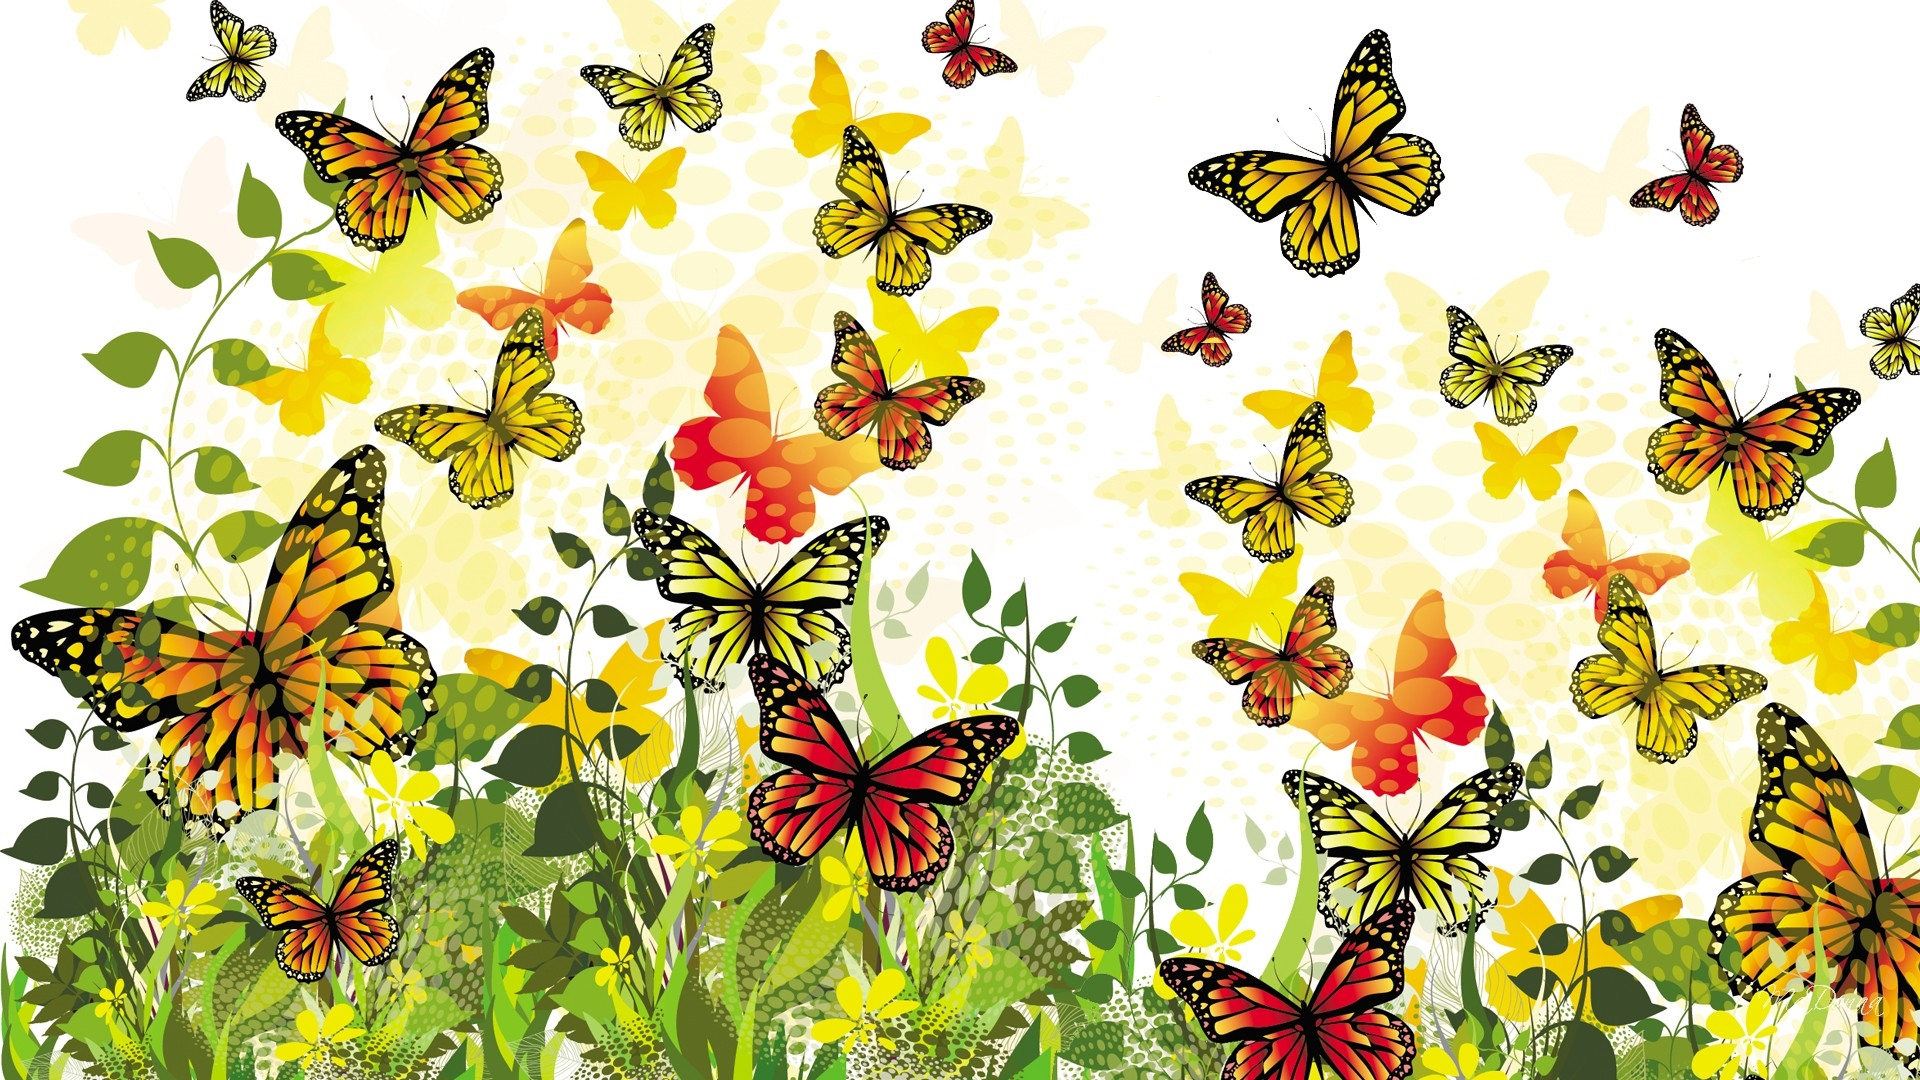 Butterflies Download Butterfly Garden Pic Wallpaper Hd 1920x1080 Wallpaper Teahub Io